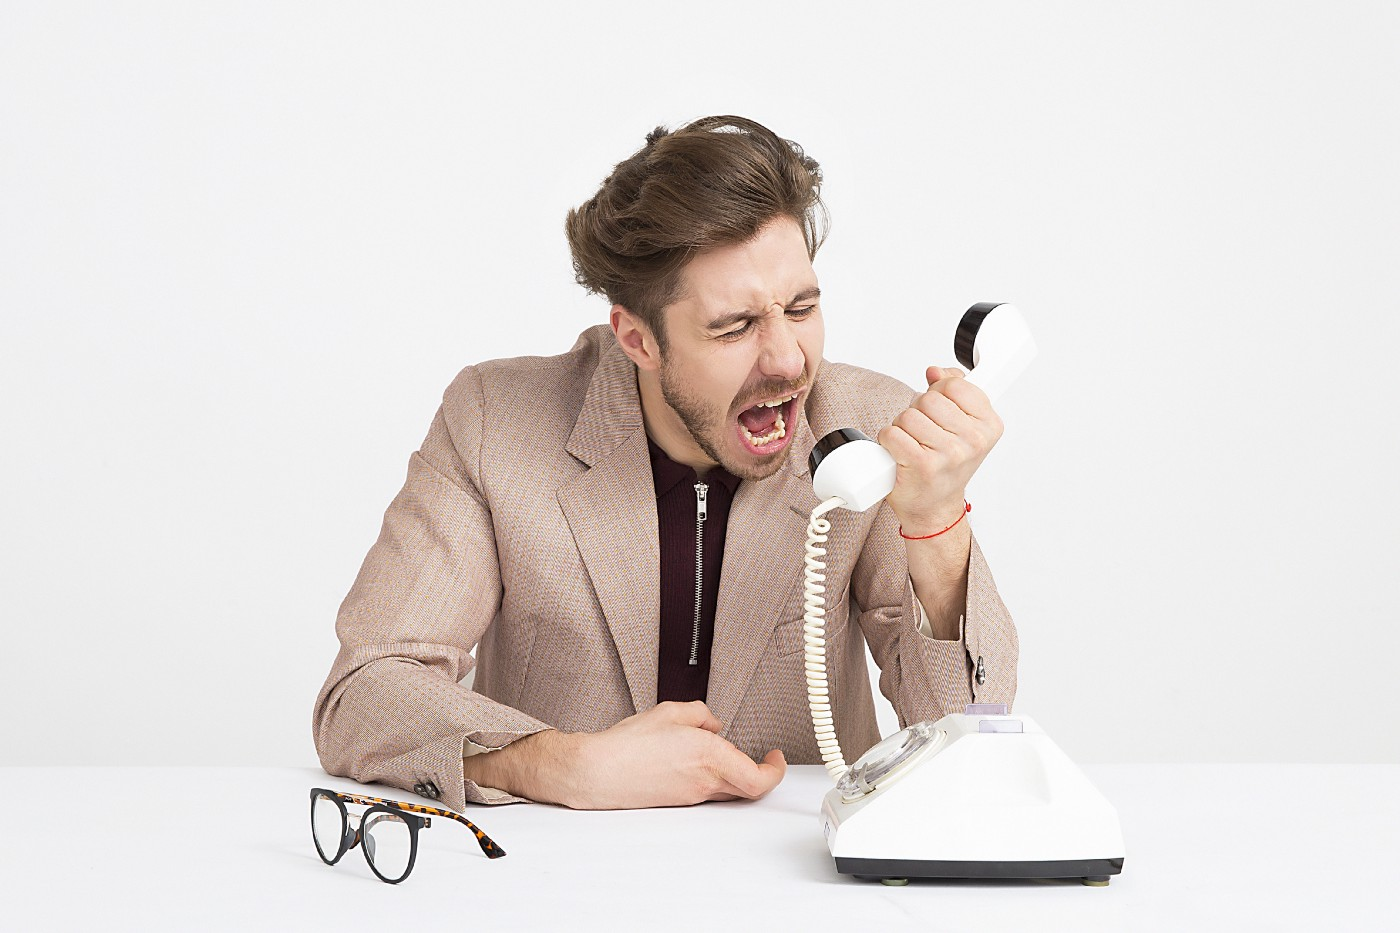 a person screaming into a telephone receiver. the telephone is lying on a surface in front of the person as are a pair of glasses